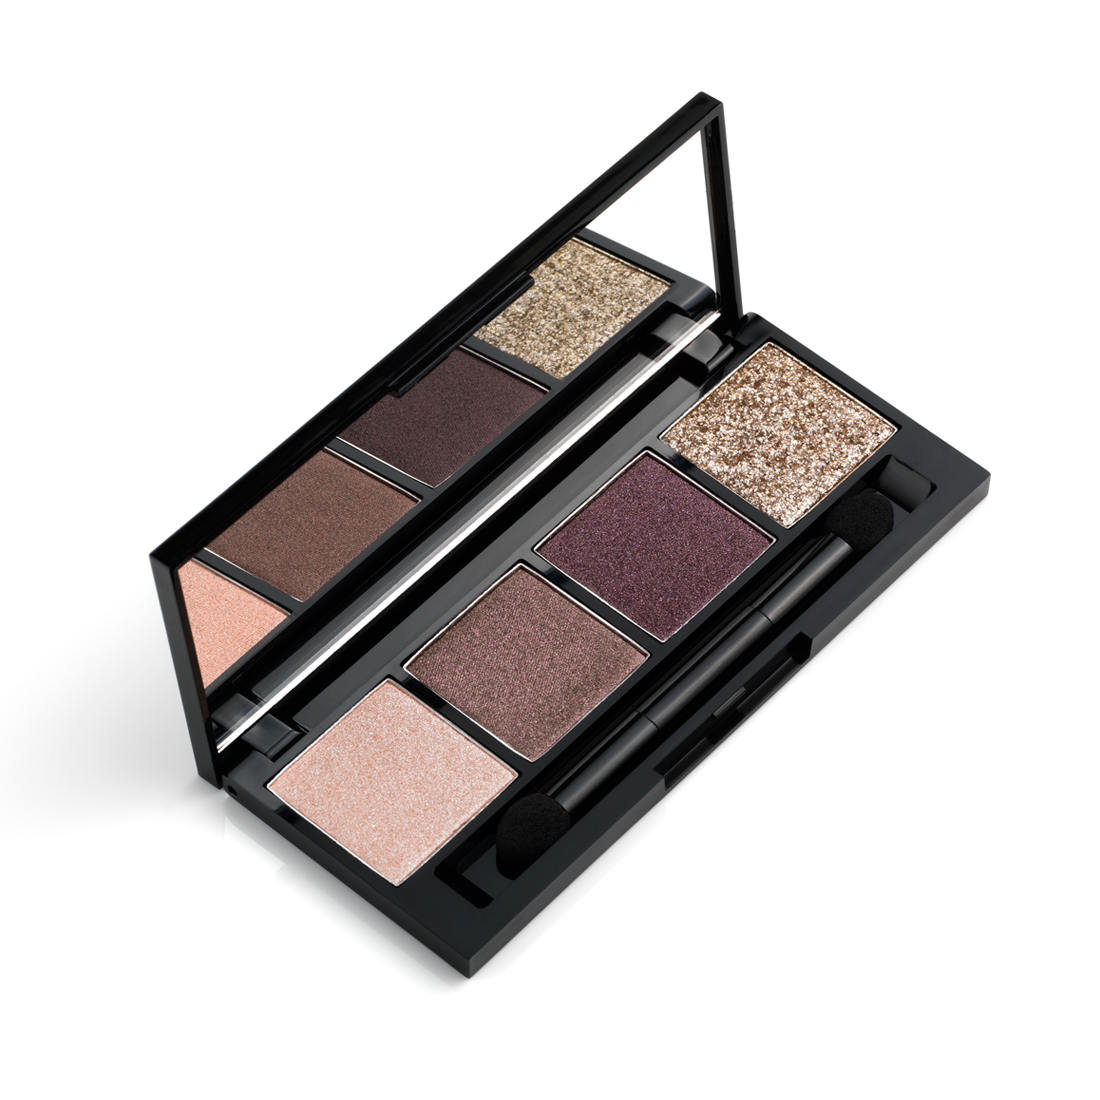 Mii Cosmetics, Revolutionise your beauty regime with these new must-haves!' included: NEW Mii Couture Eye Colour